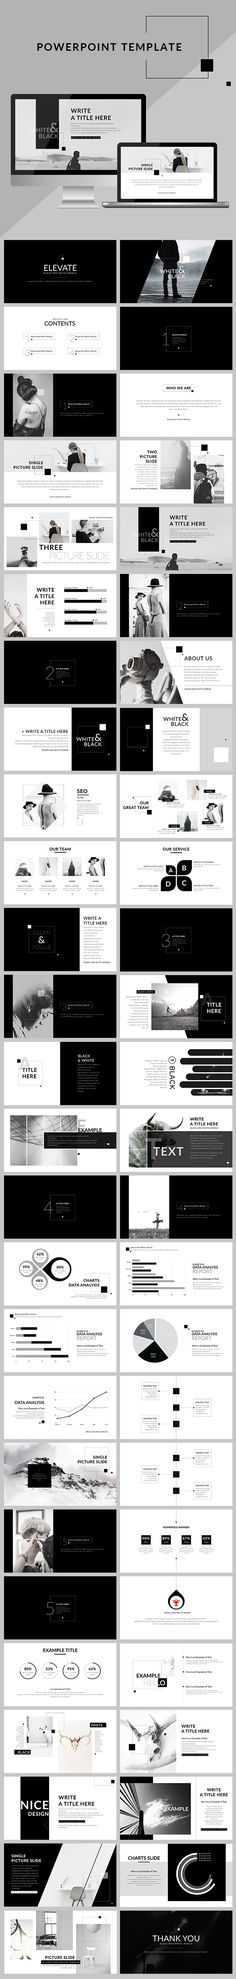 Black & White - Creative clean Powerpoint presentation